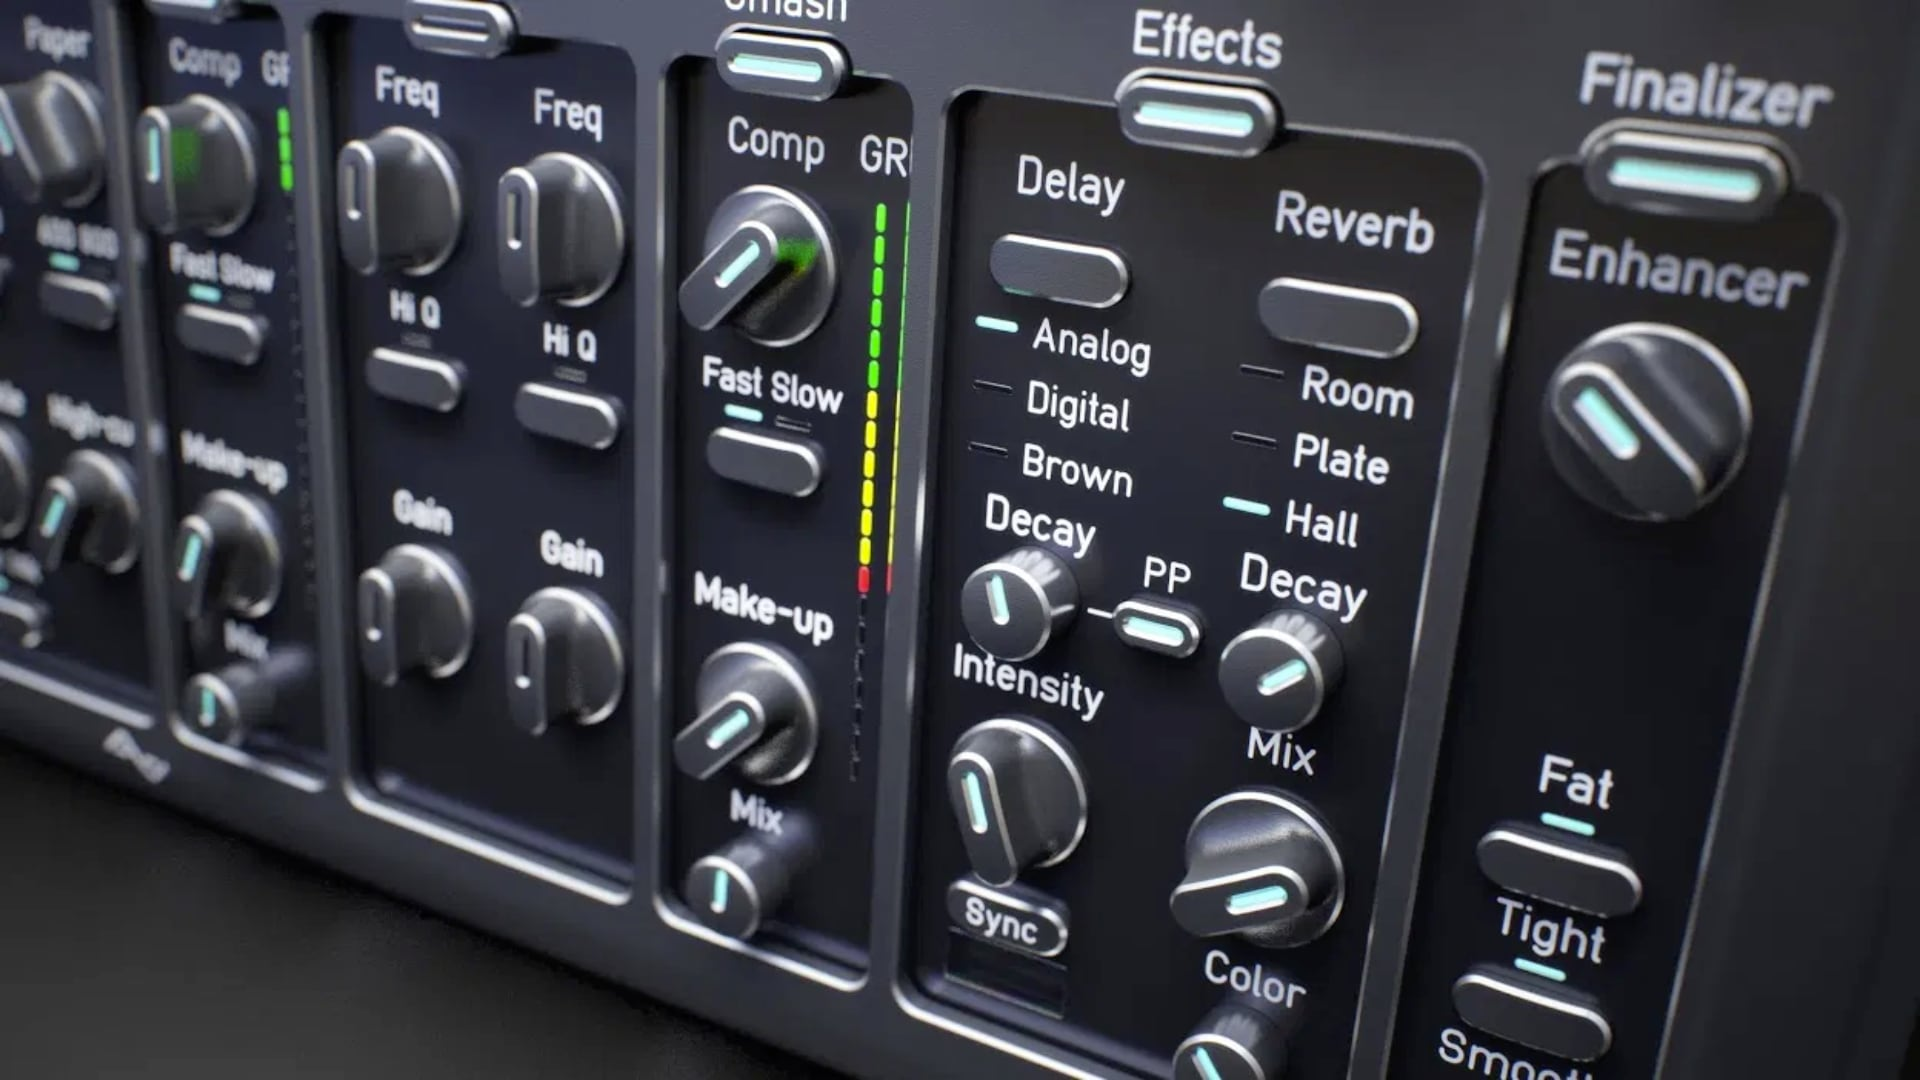 Audified has introduced ToneSpot Voice Pro